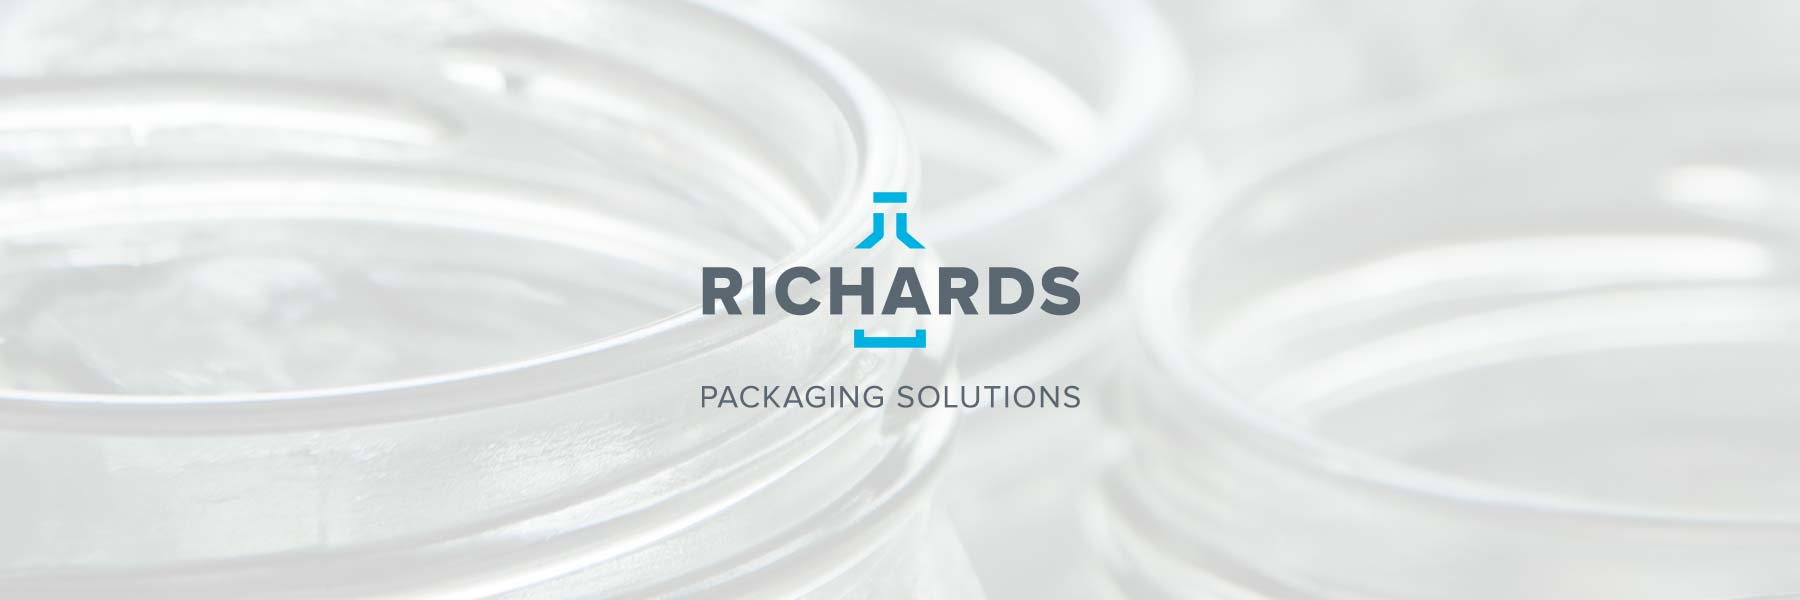 Richards Packaging solutions-Portfolio header